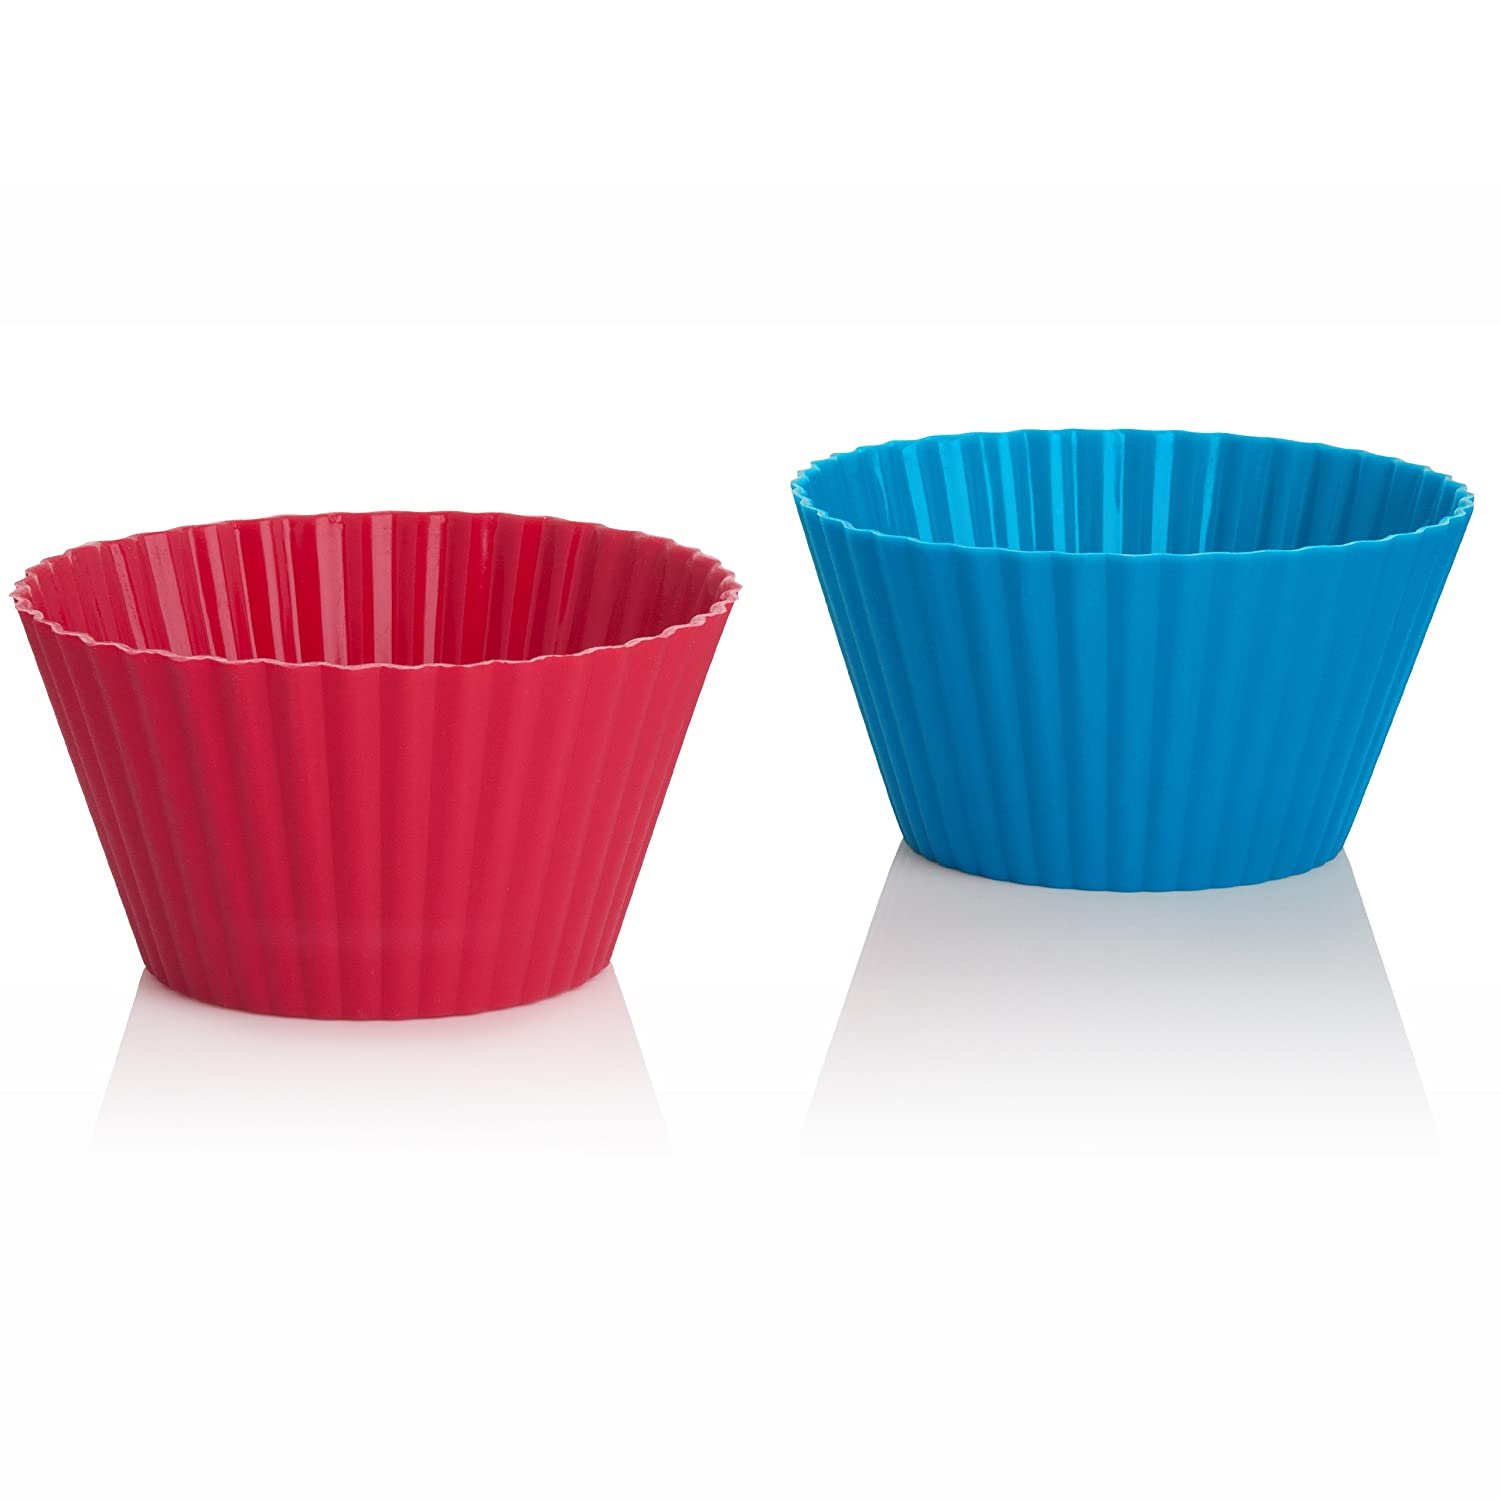 Image: Trudeau Silicone Muffin Cups - Fun and festive assorted colors; set includes red, green and blue colored cups